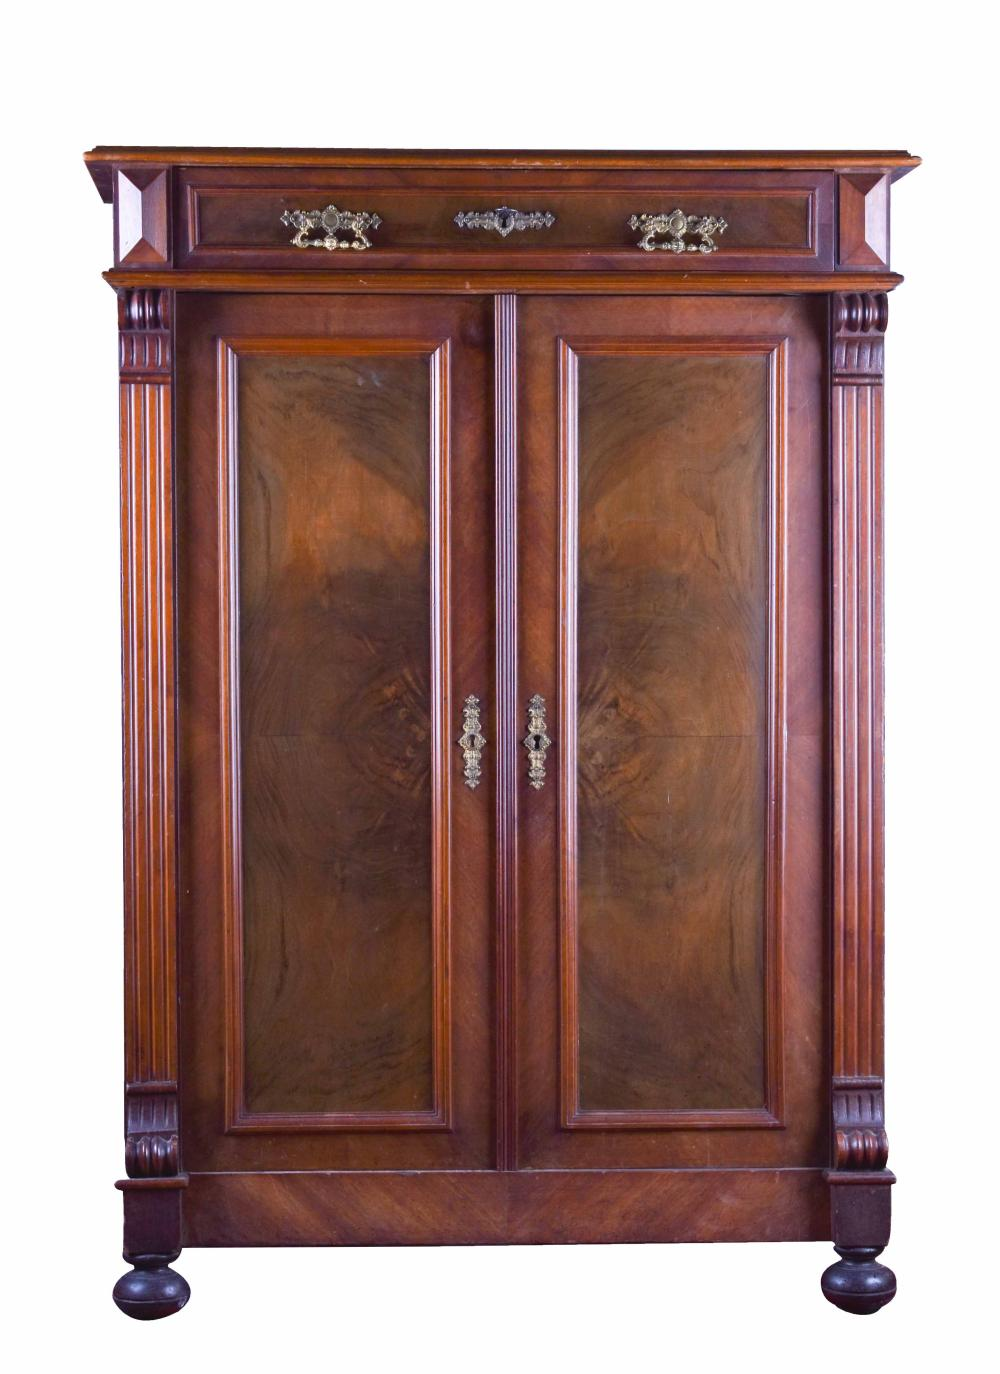 Sold Price Gründerzeit Schrank Um 1880 90 Wilhelminian Style Cabinet Around 1880 90 July 3 0120 10 00 Am Cest